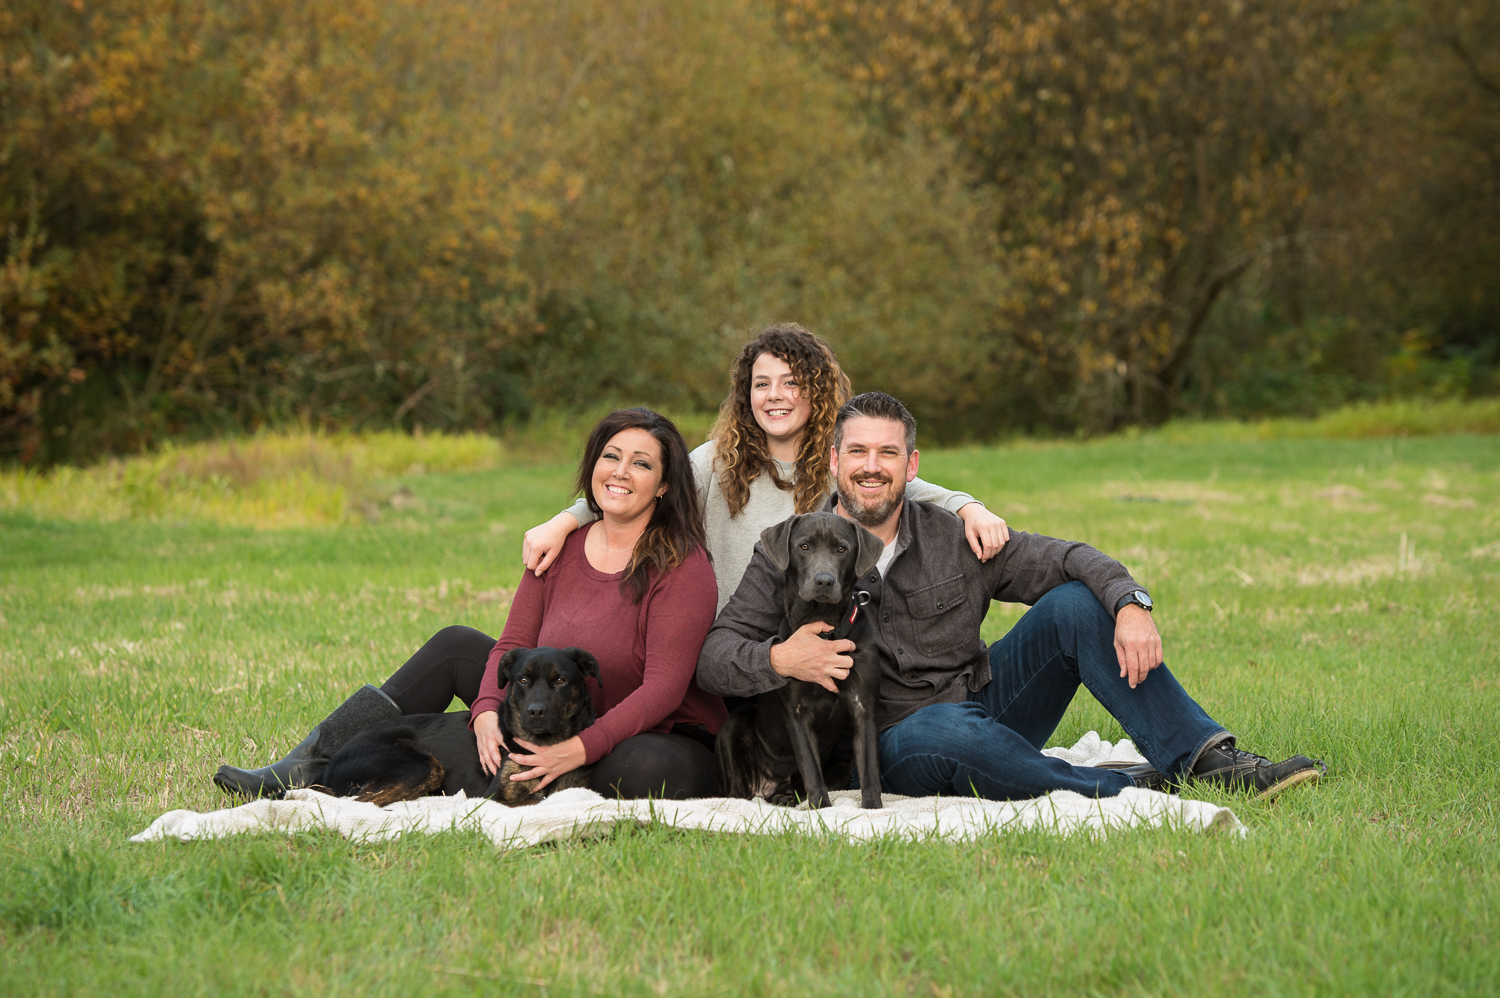 Lake Stevens Family and Pet Photographer - Jared M Burns.jpg